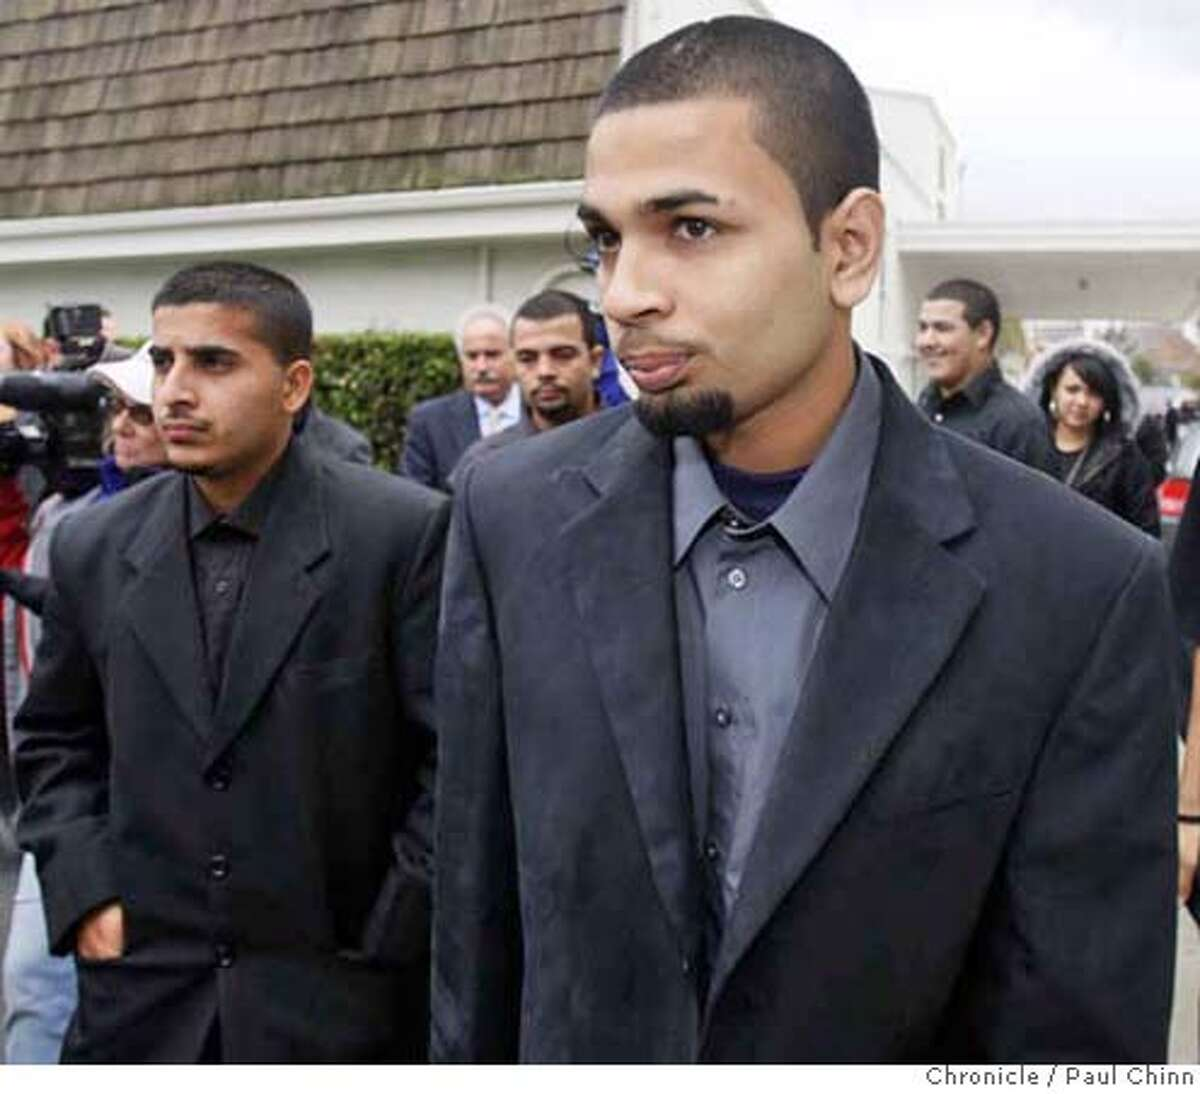 Paul Dhaliwal (right) one of the two brothers injured in the tiger attack, leaves the funeral service for 17-year-old Carlos Sousa, Jr. in San Jose, Calif. on Tuesday, Jan. 8, 2008. Sousa was killed in the Christmas Day tiger attack at the San Francisco Zoo. PAUL CHINN/The Chronicle **Paul Dhaliwal Ran on: 01-12-2008 Paul Dhaliwal Ran on: 01-12-2008 MANDATORY CREDIT FOR PHOTOGRAPHER AND S.F. CHRONICLE/NO SALES - MAGS OUT